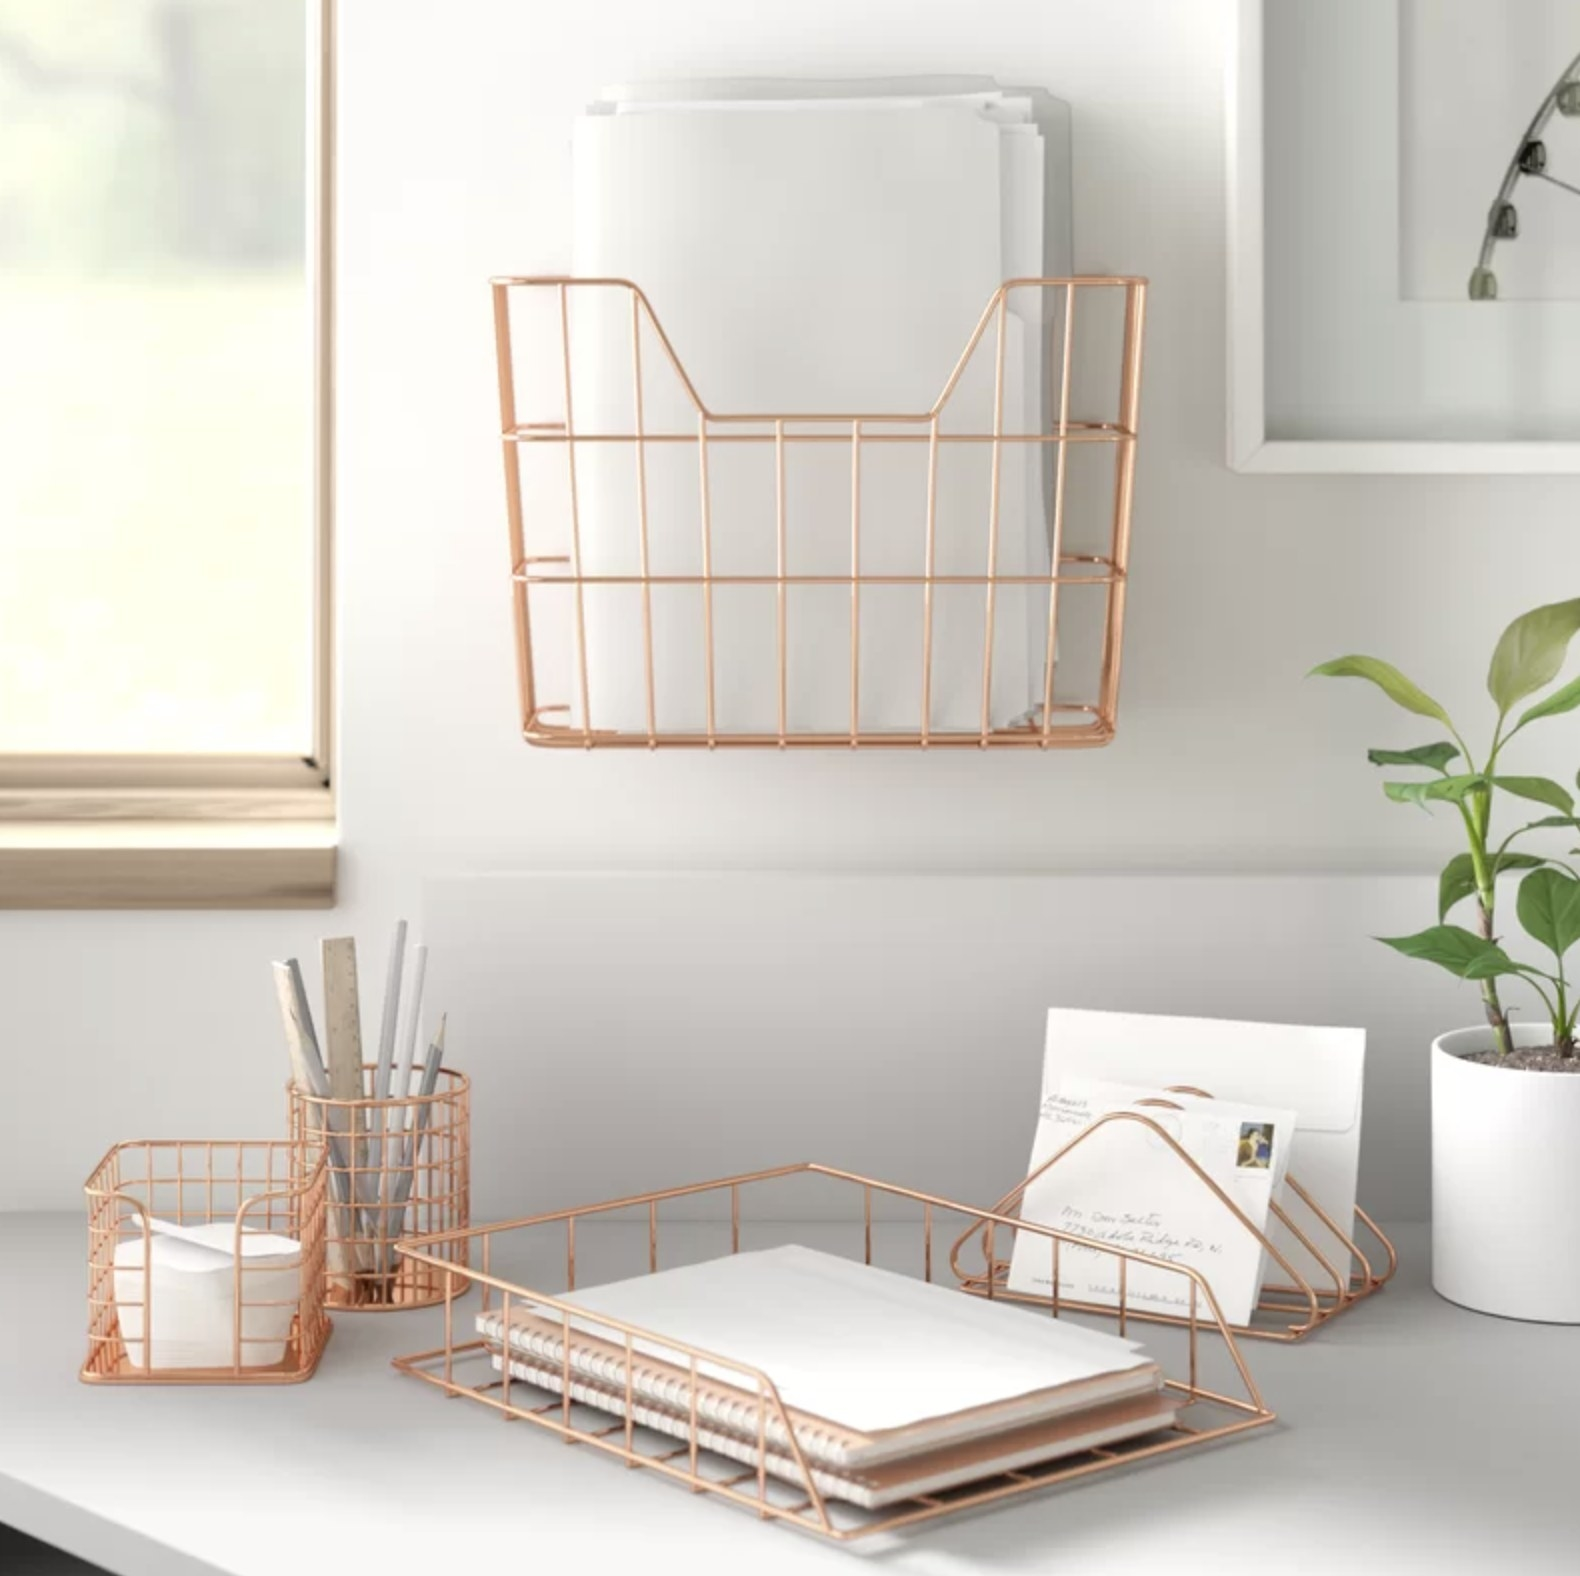 The five-piece wire metal organizer set